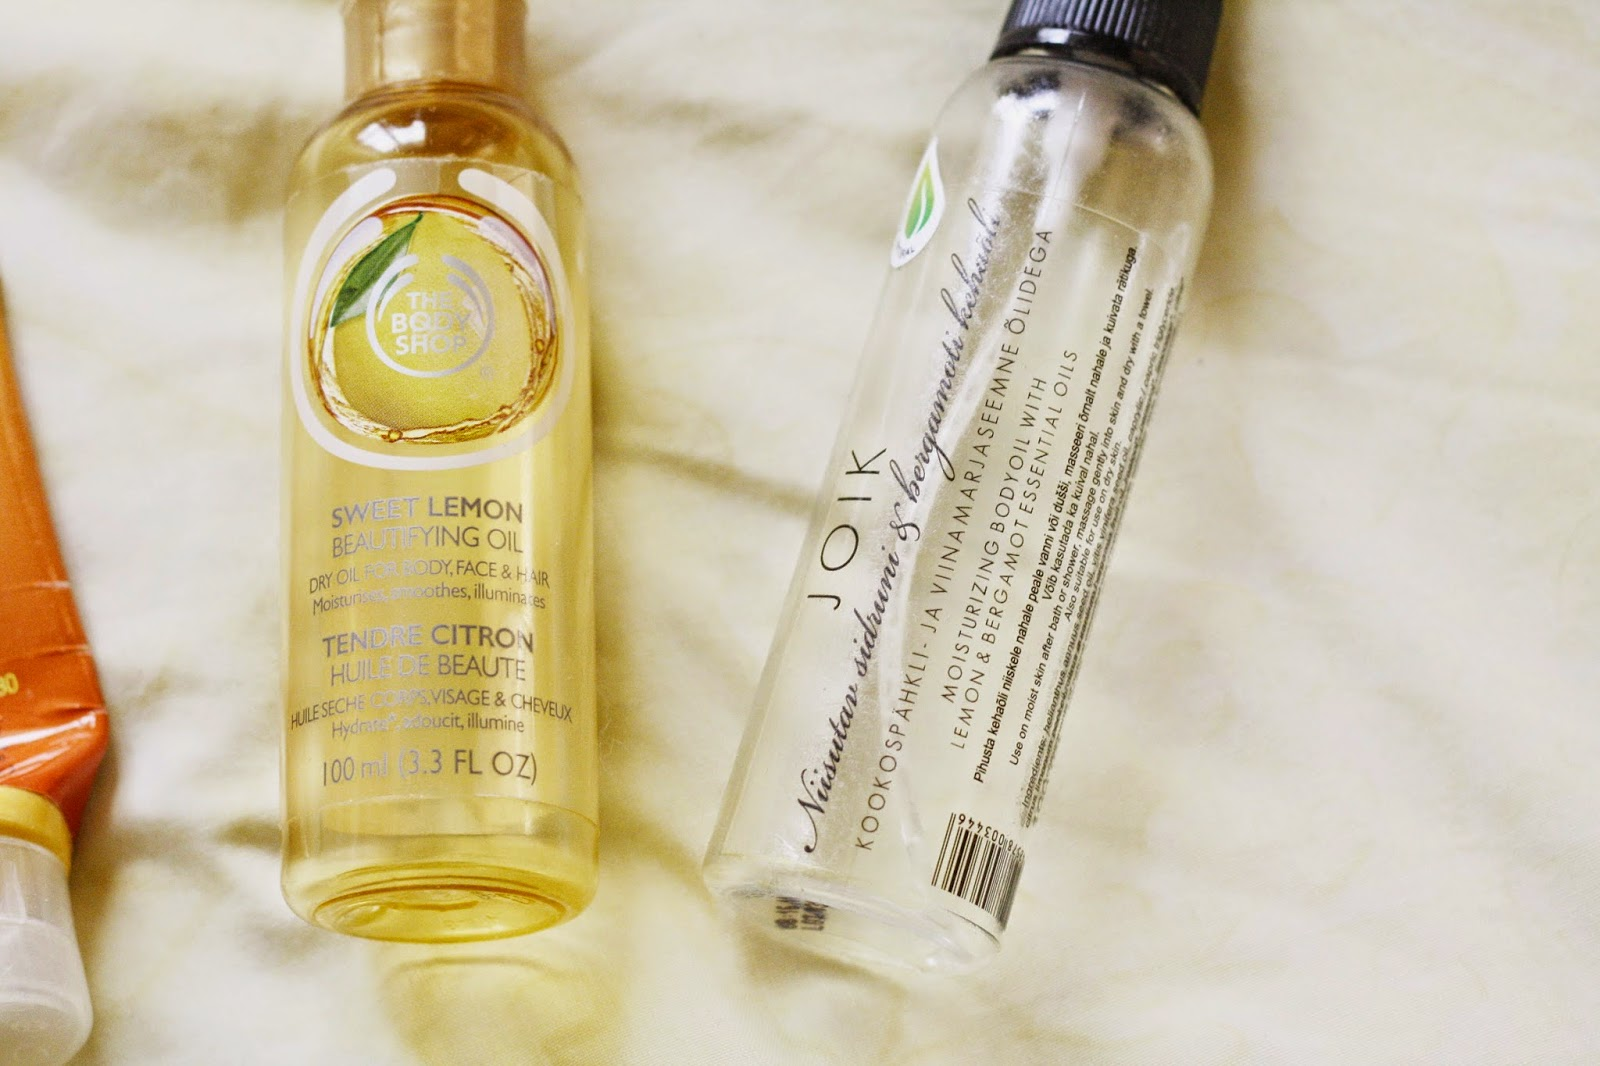 Joik Body Oil Review